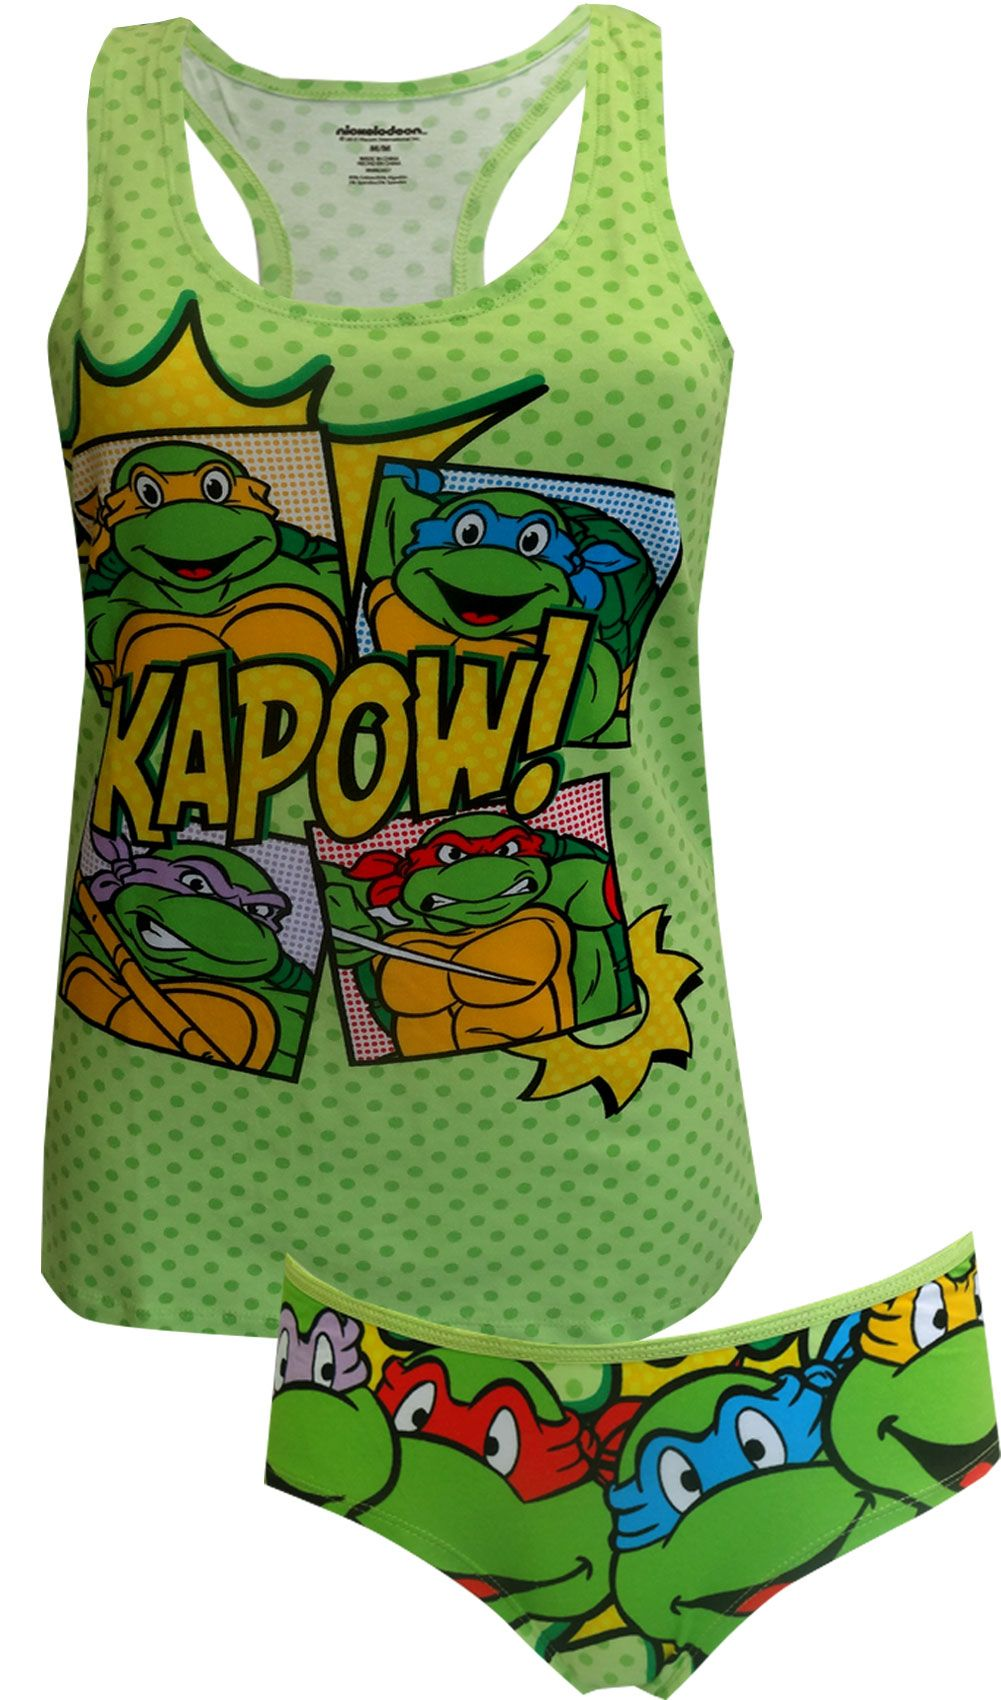 324be3bdf9 Love the TMNT! These cami panty sets for women feature the Teenage Mutant  Ninja Turtle Gang in colorful graphics on a green polka dot background.